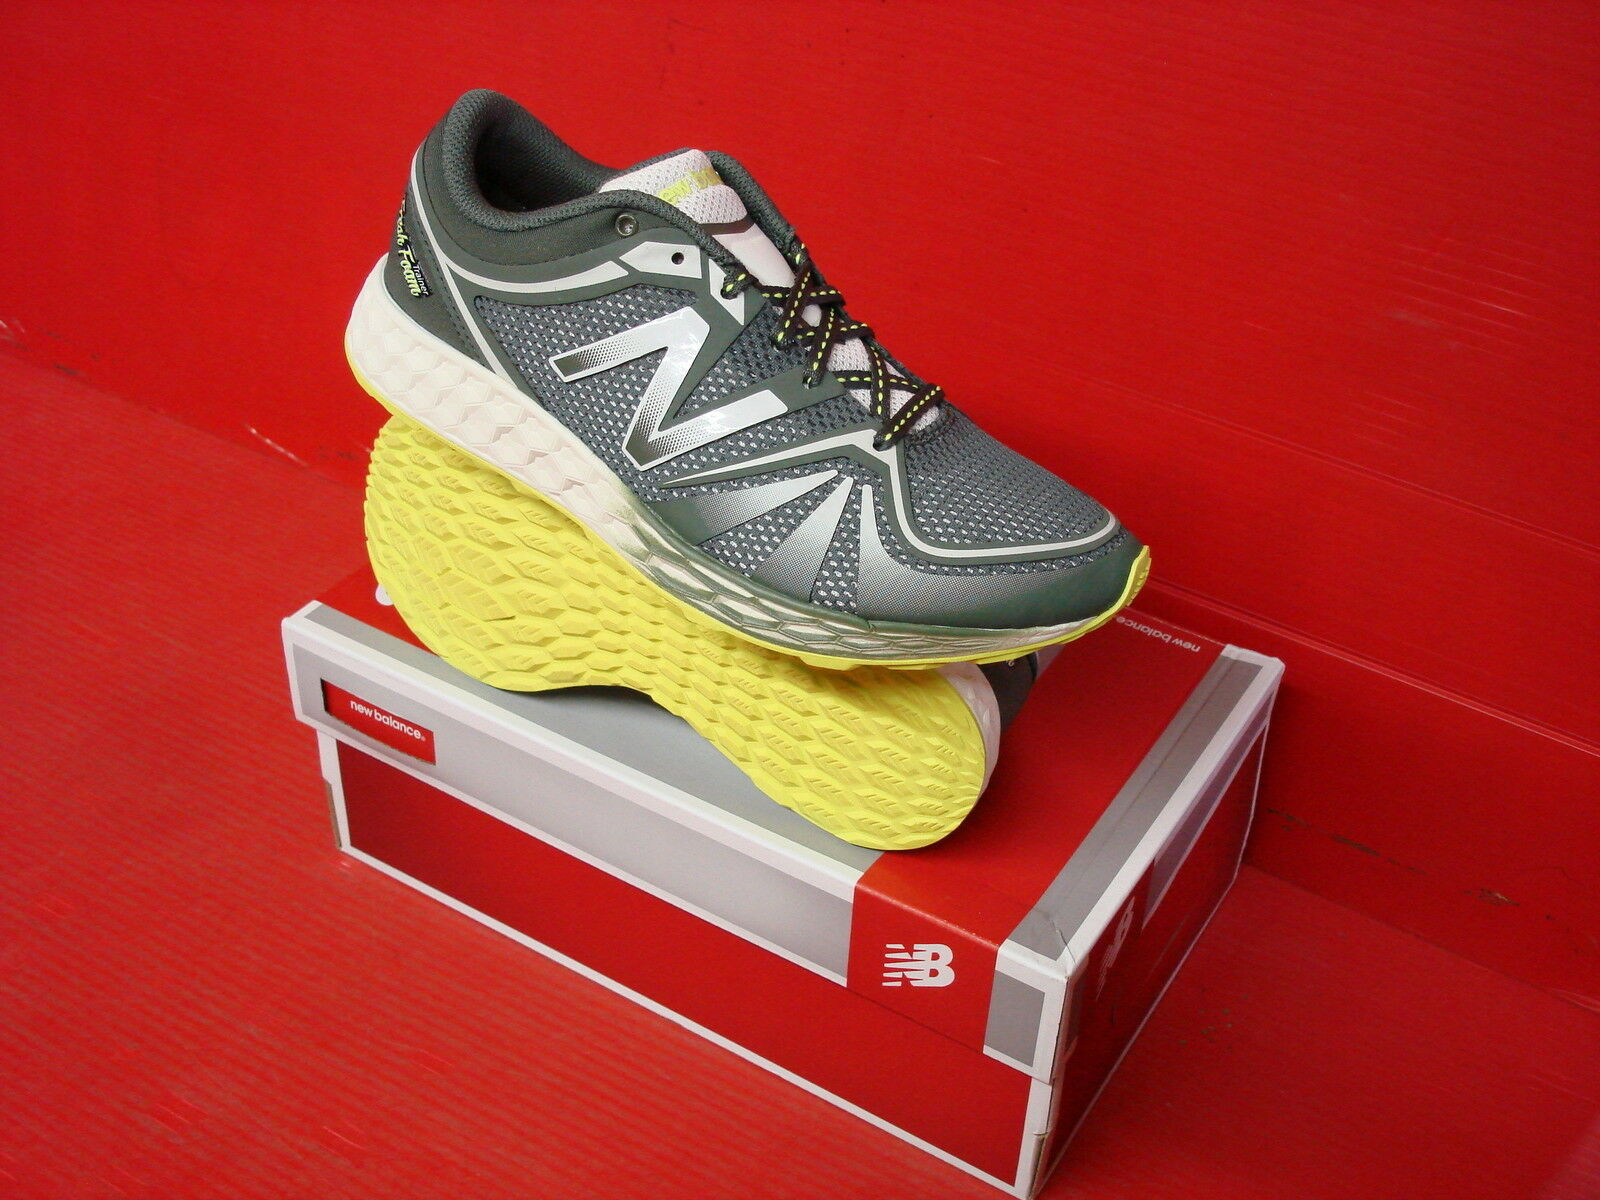 NEW BALANCE 822 TRAINING Damenschuhe RUNNING WX822